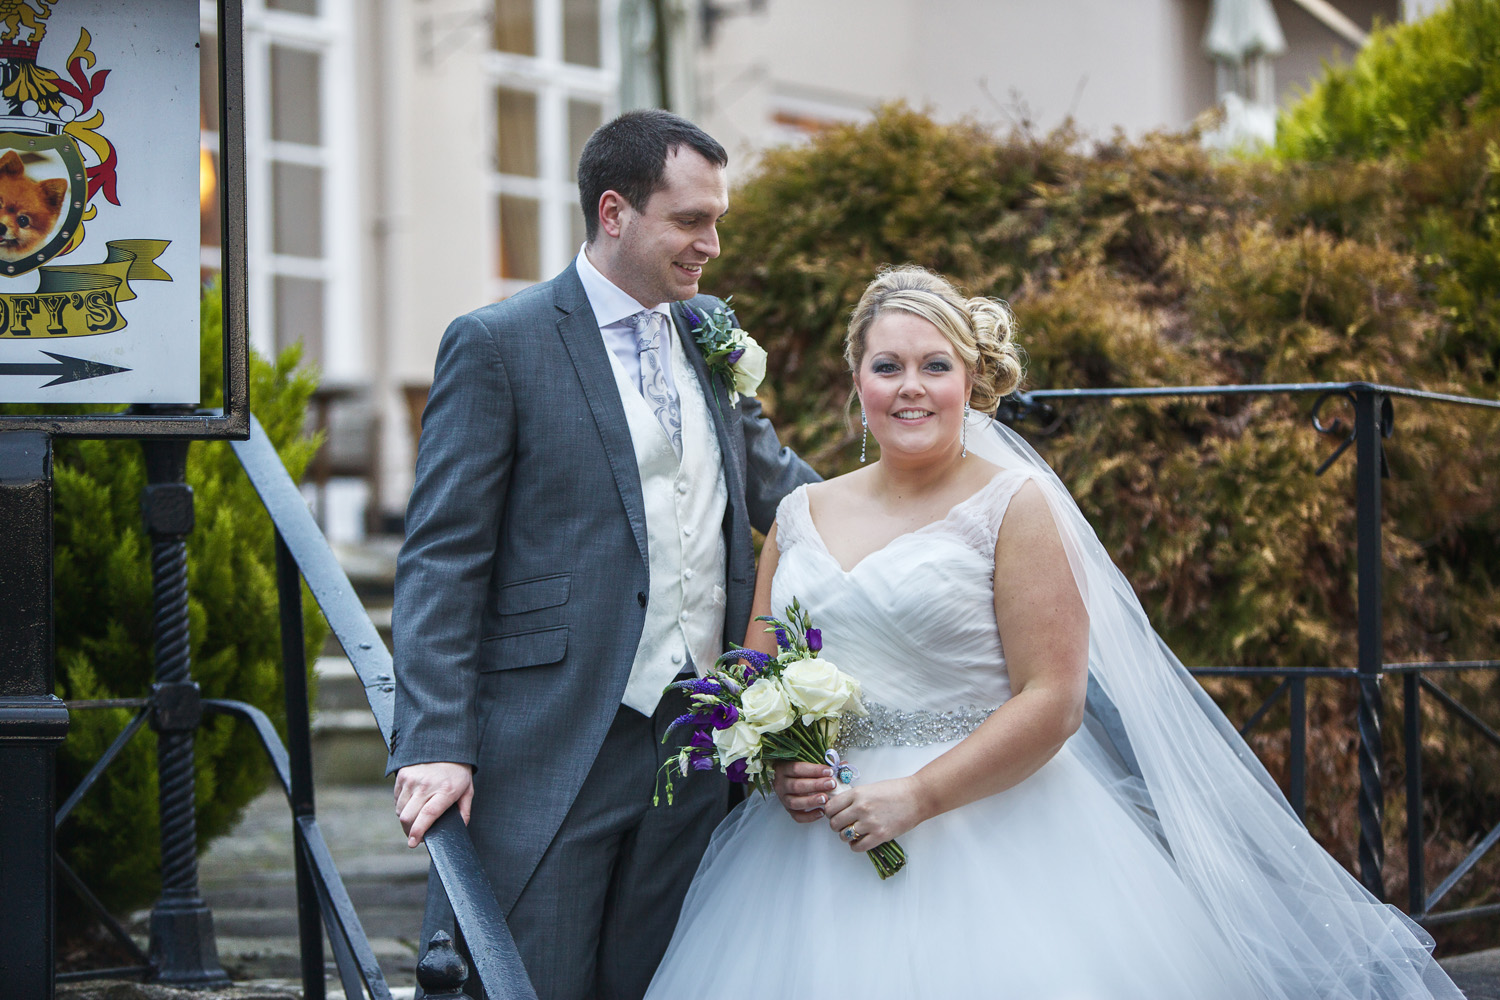 Taplow_House_Hotel_Wedding_Photographer_Maidenhead_048.jpg